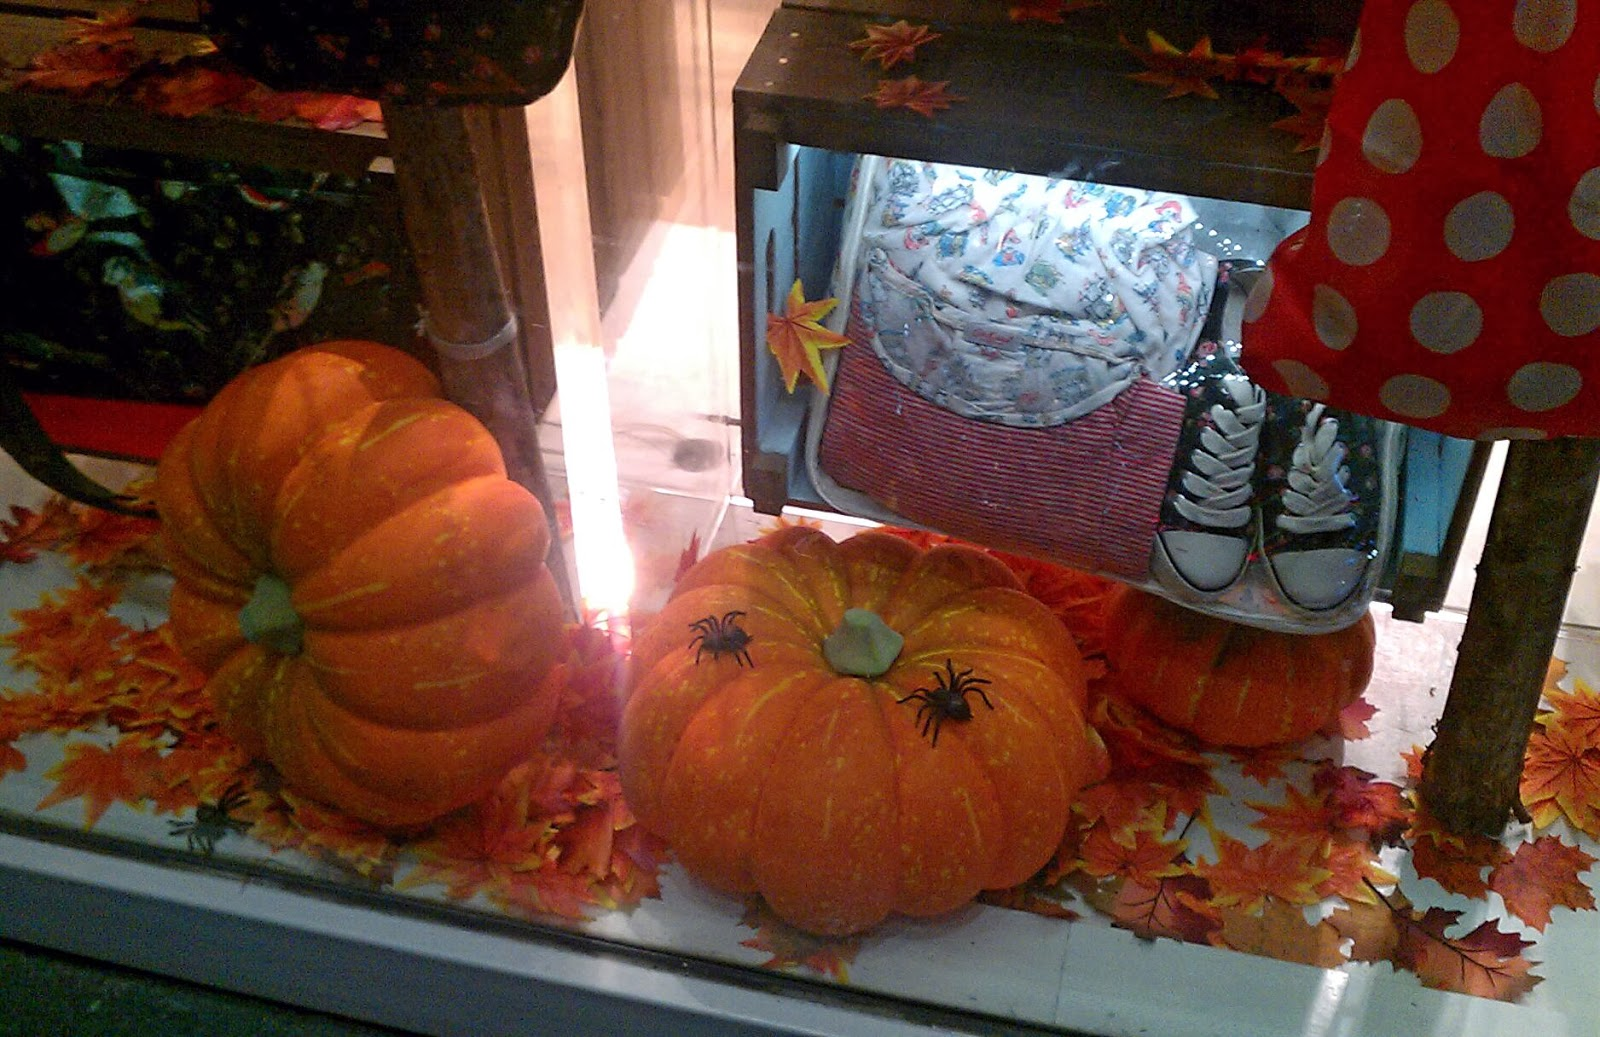 You can feel the Halloween in this window display by their pumpkins, leaves, and spiders on the ground.